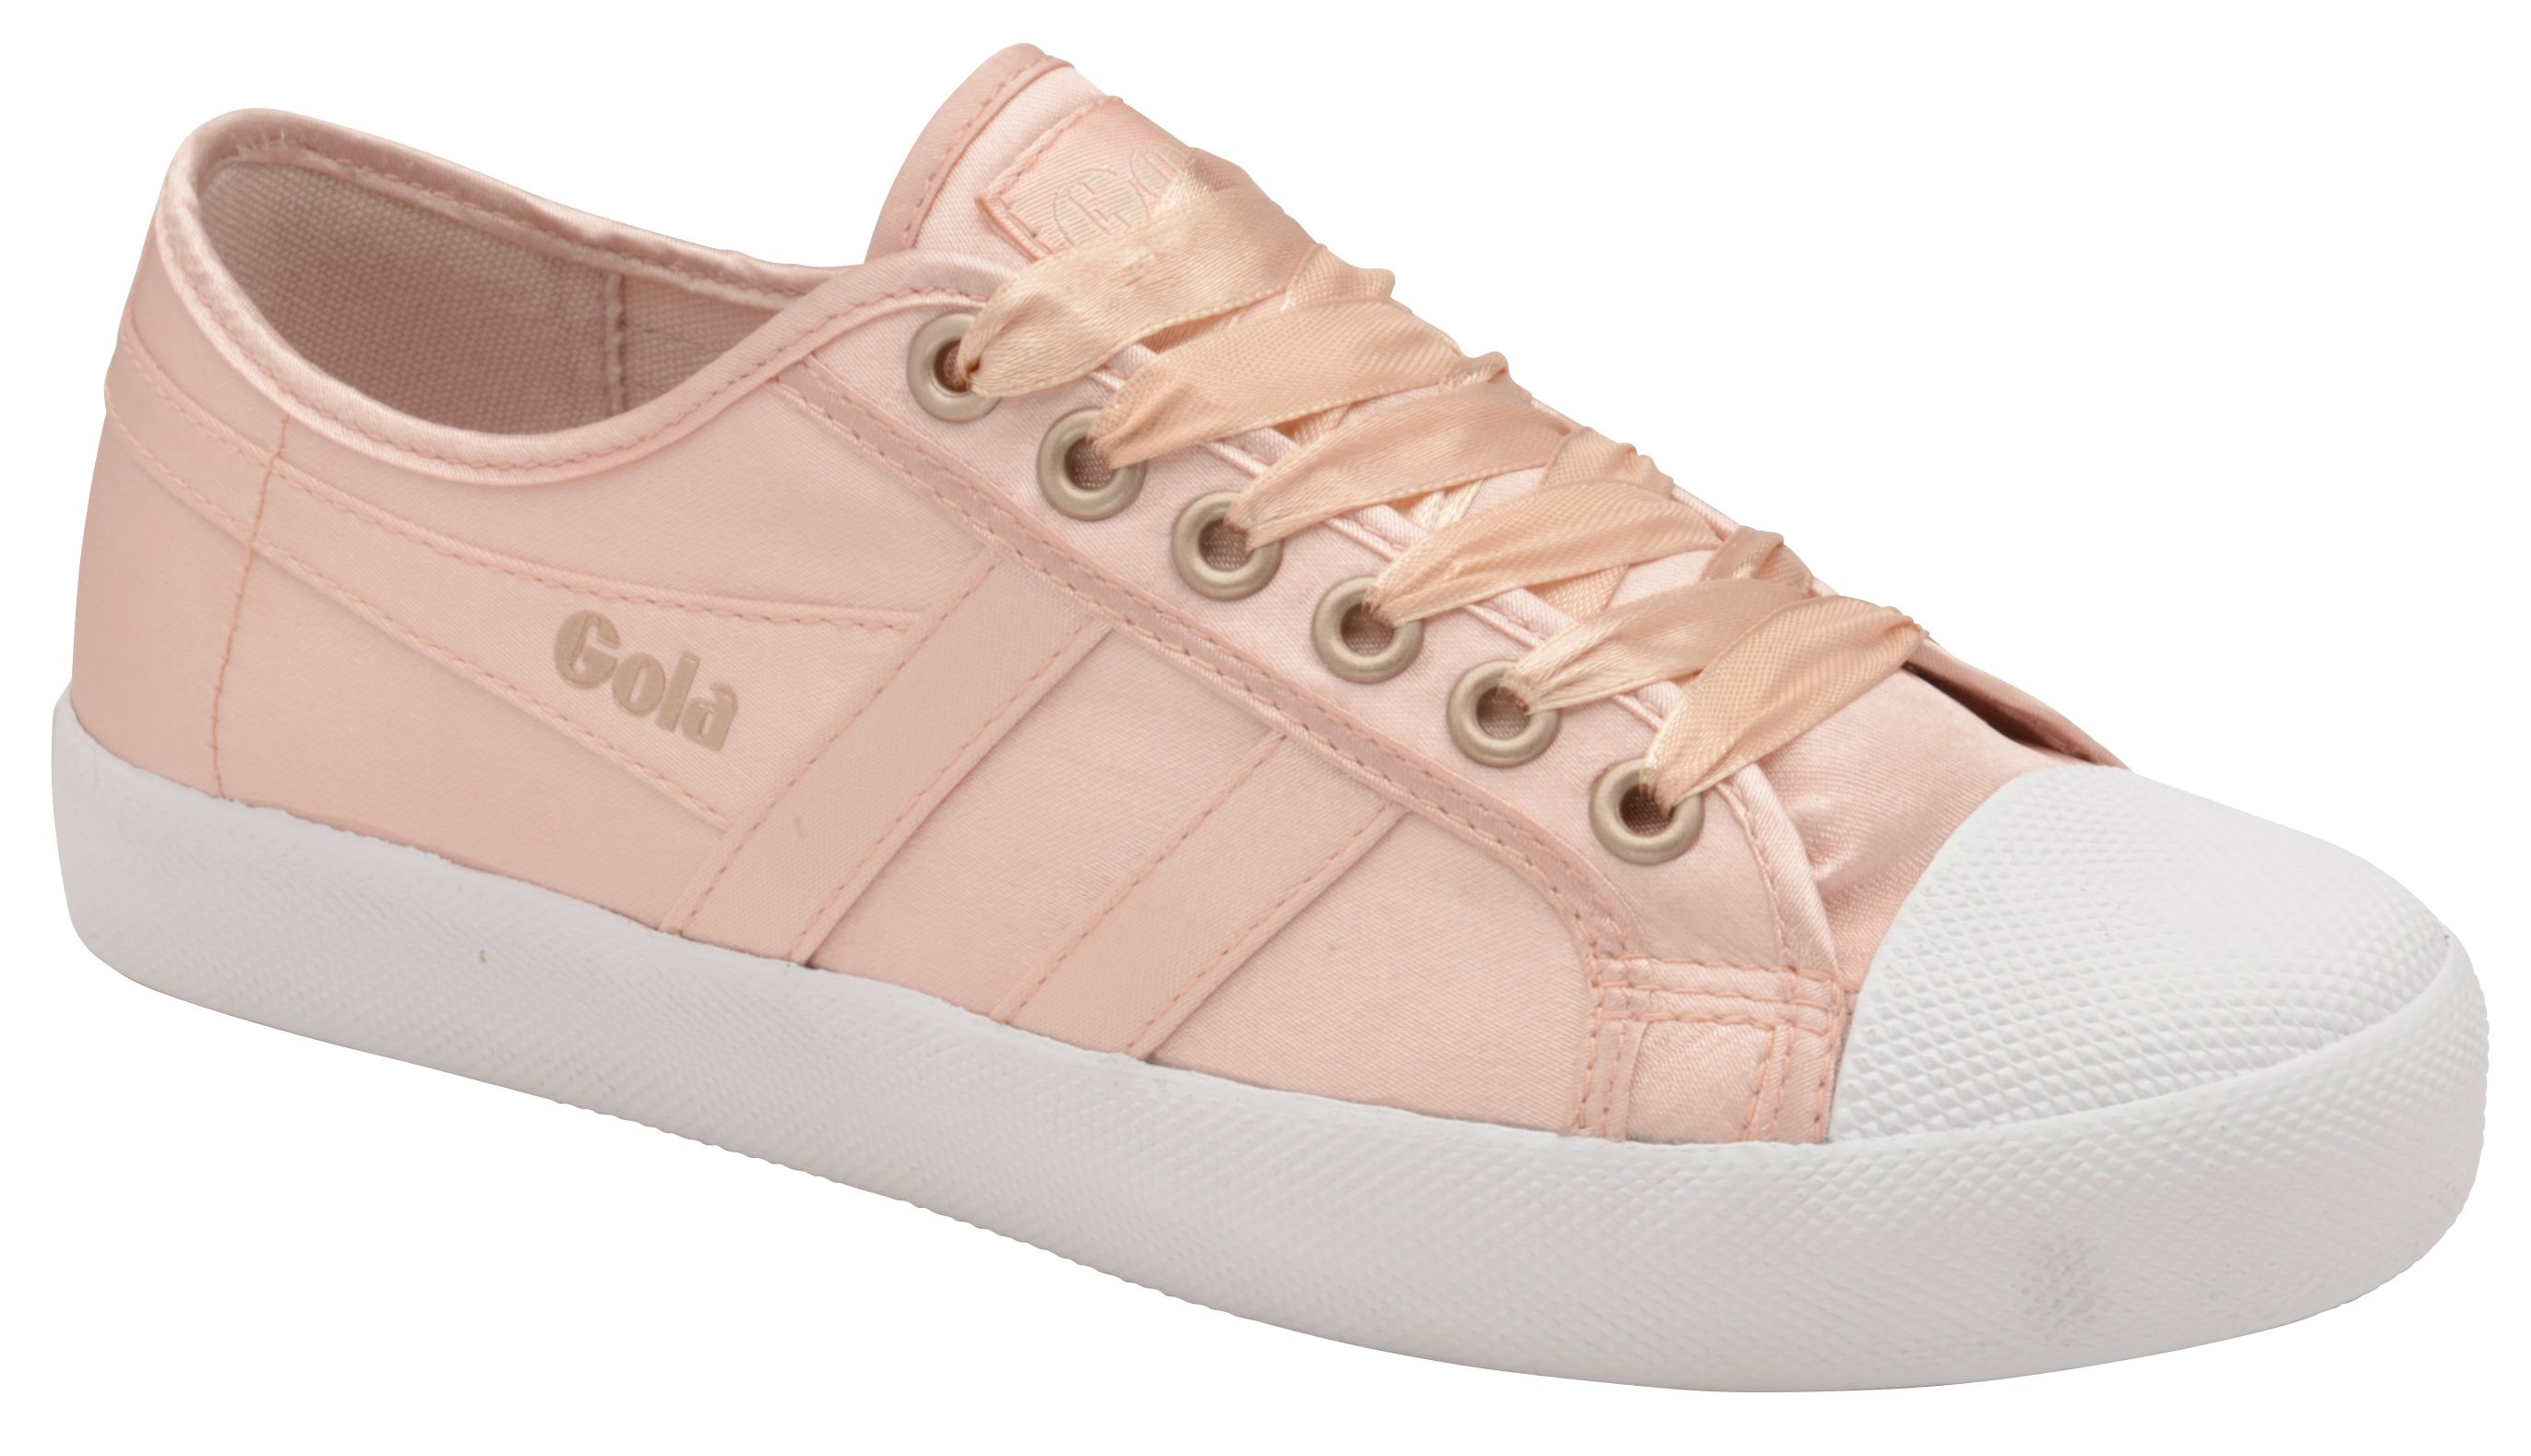 Gola Coaster Satin Lace Up Trainers, Pink